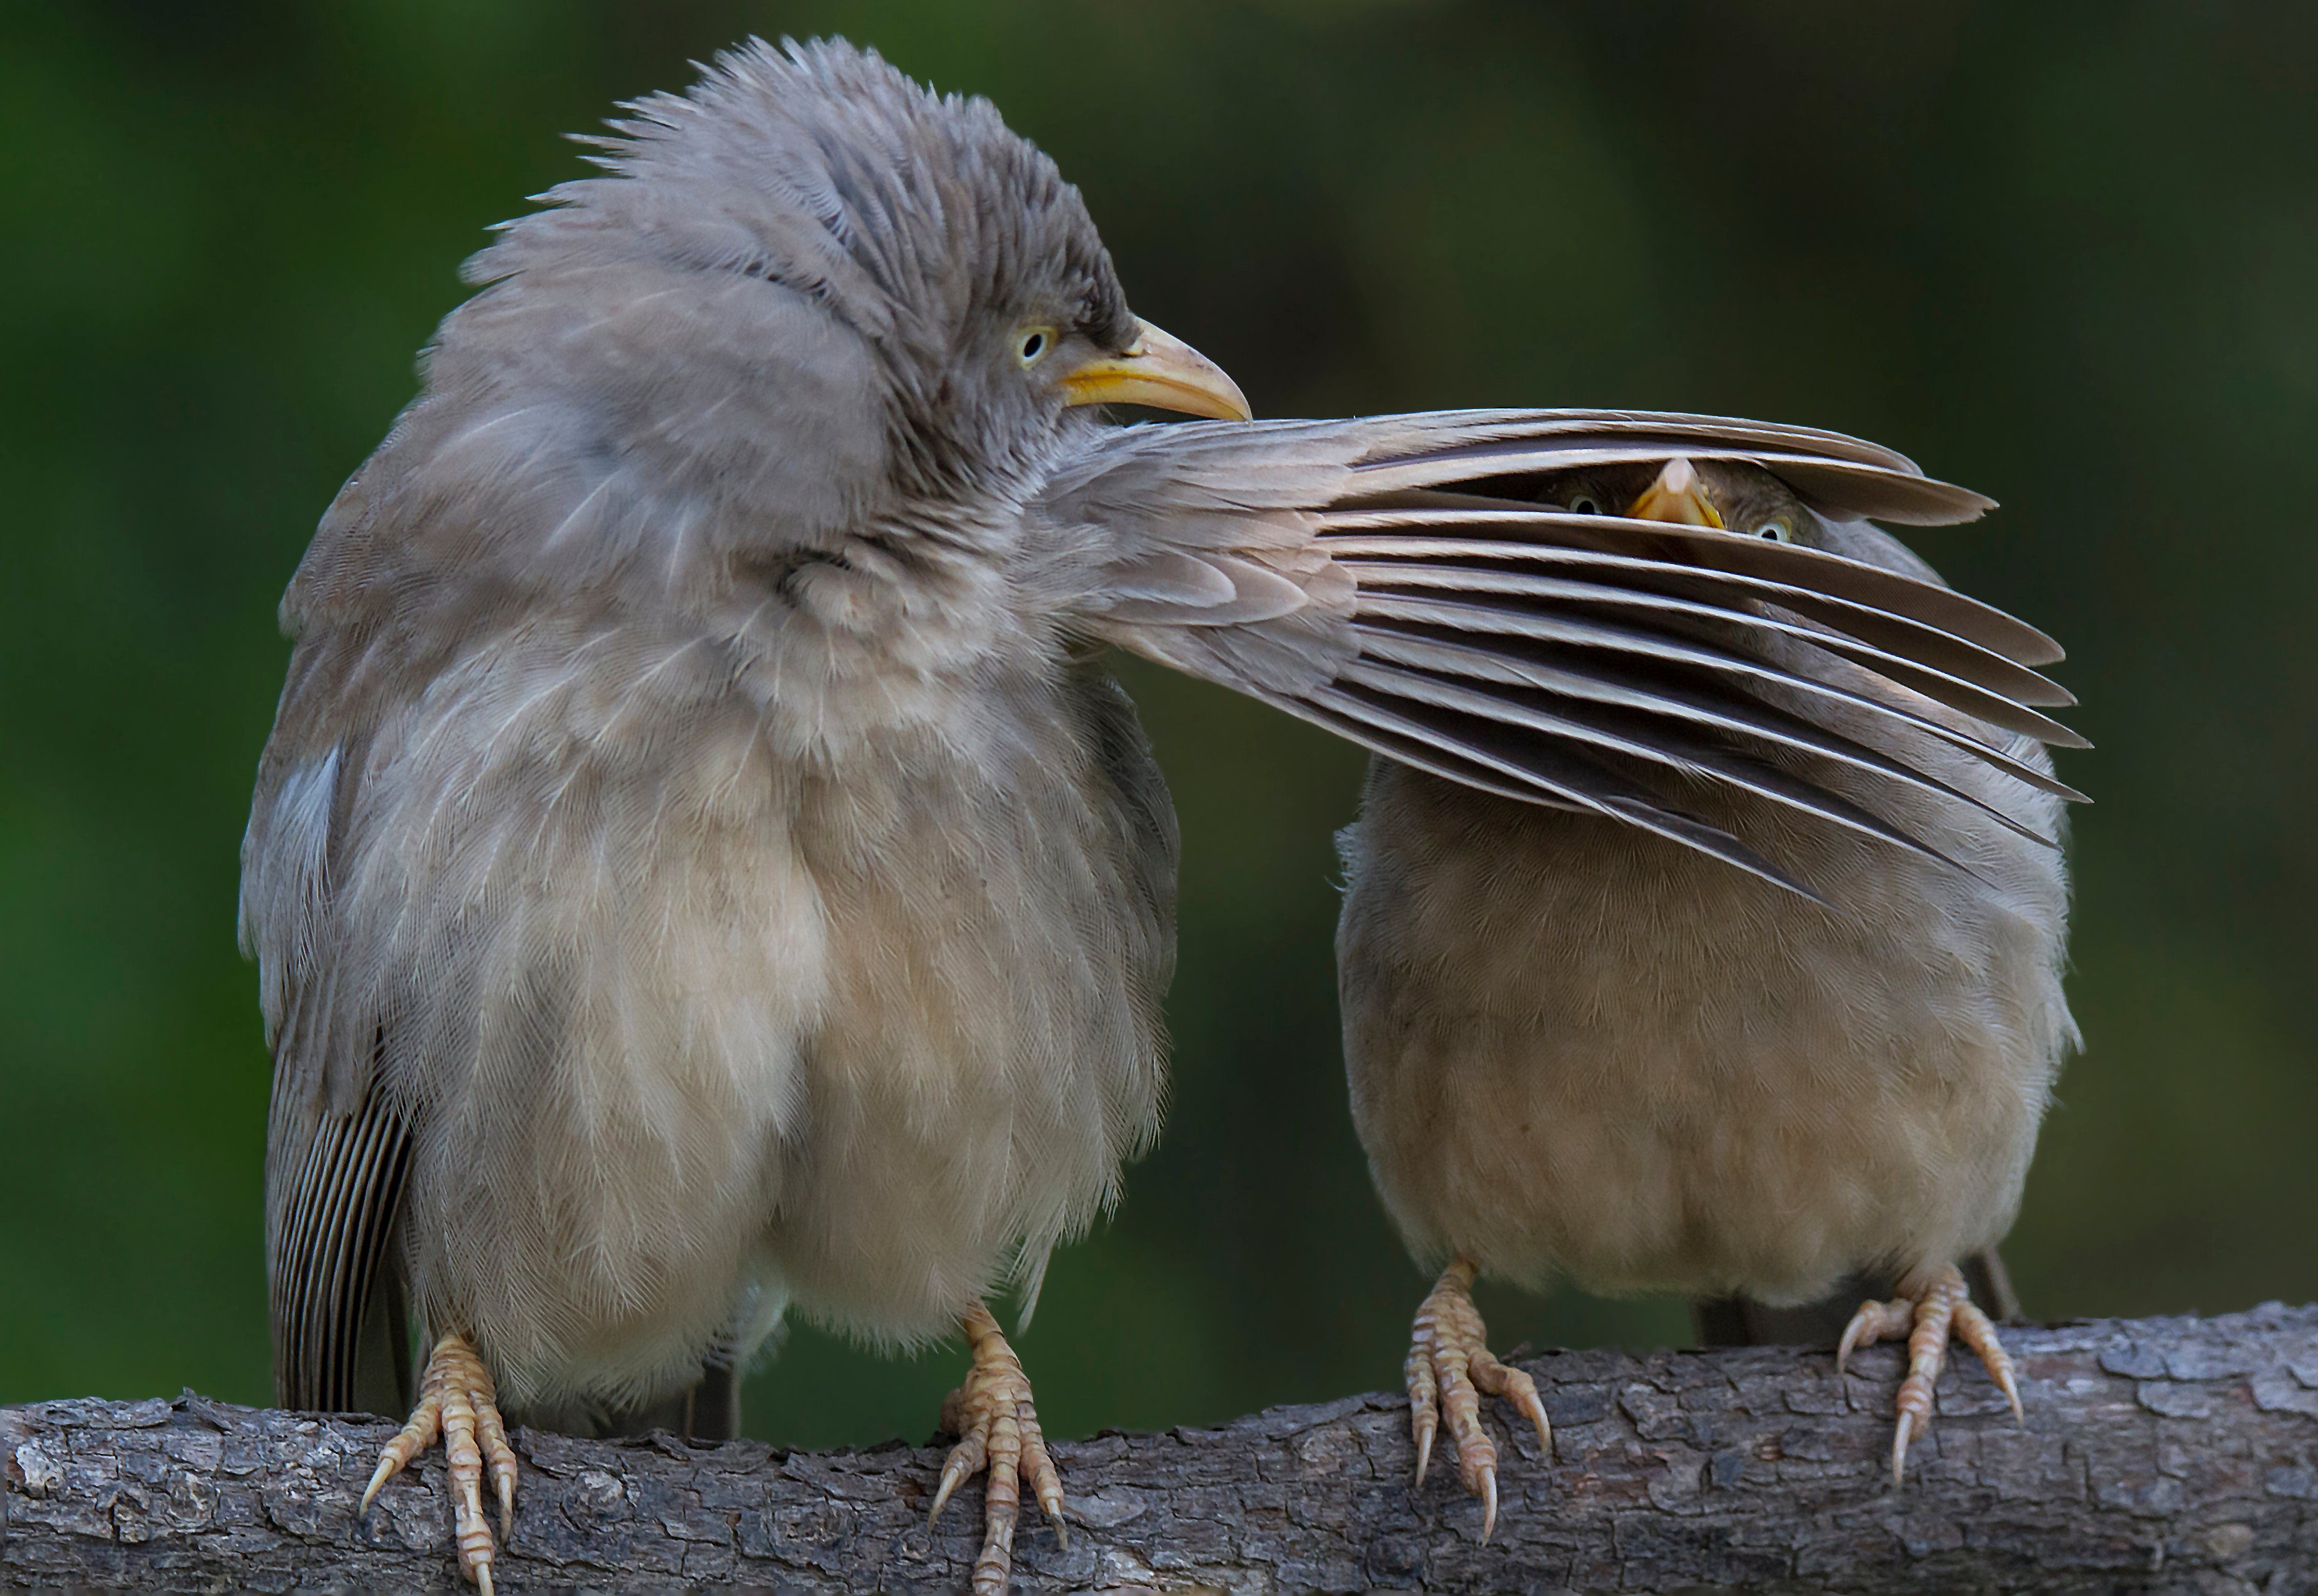 The Comedy Wildlife Photography awards in pictures